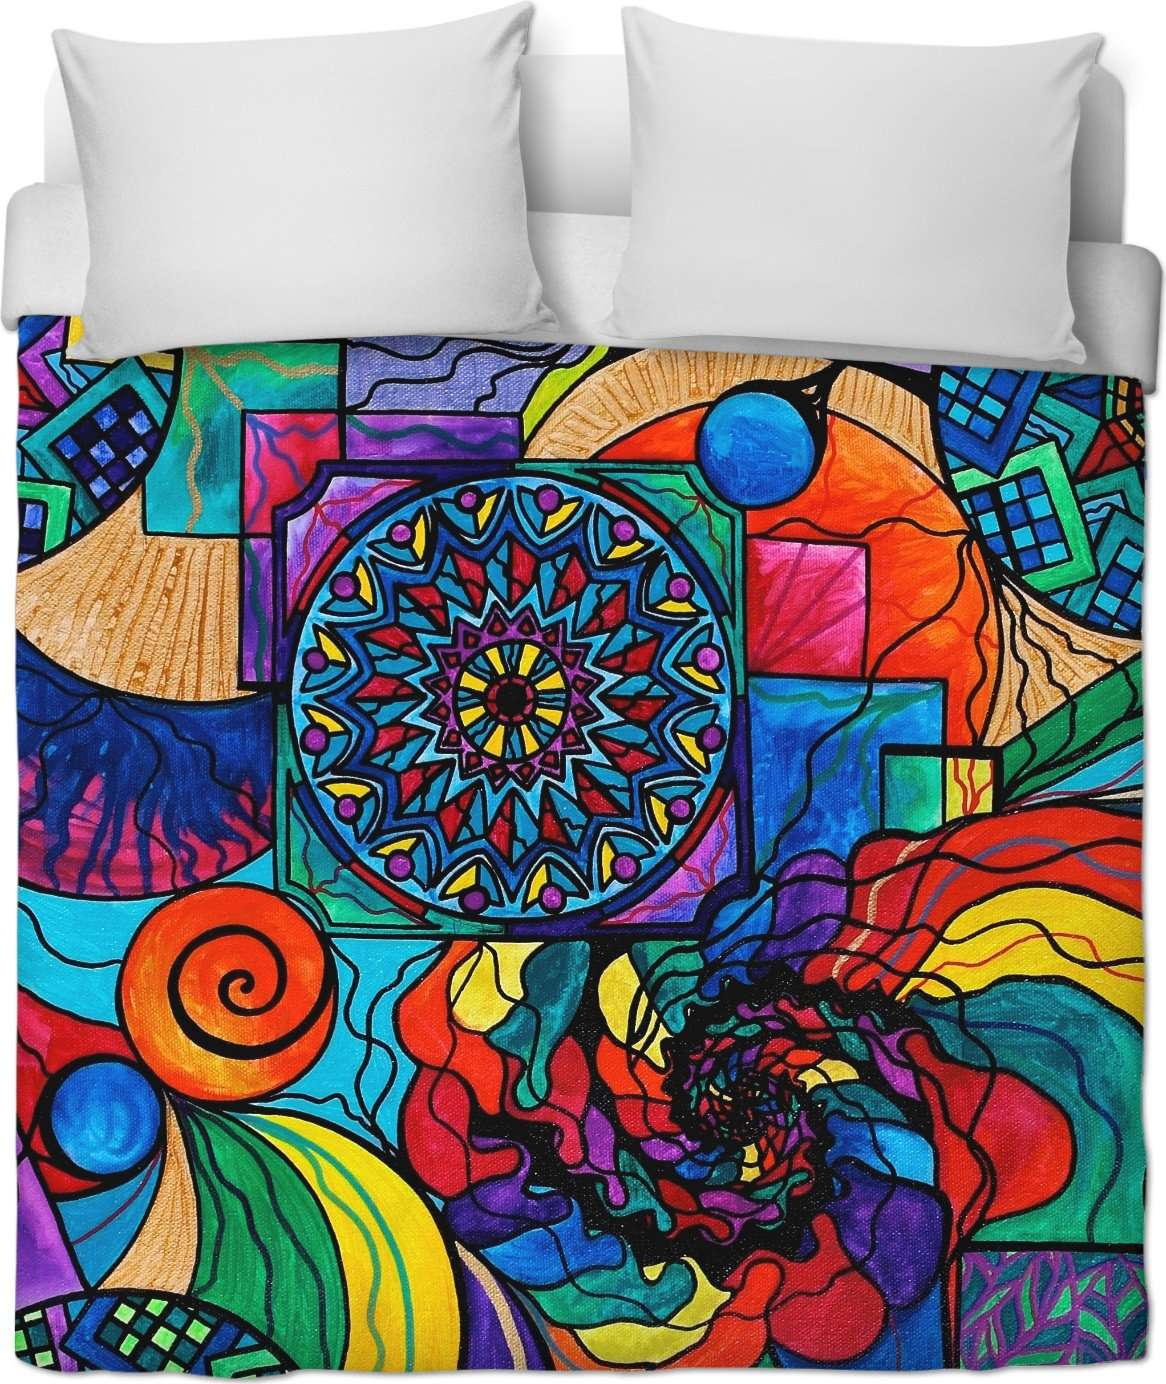 Self Exploration - Duvet Cover